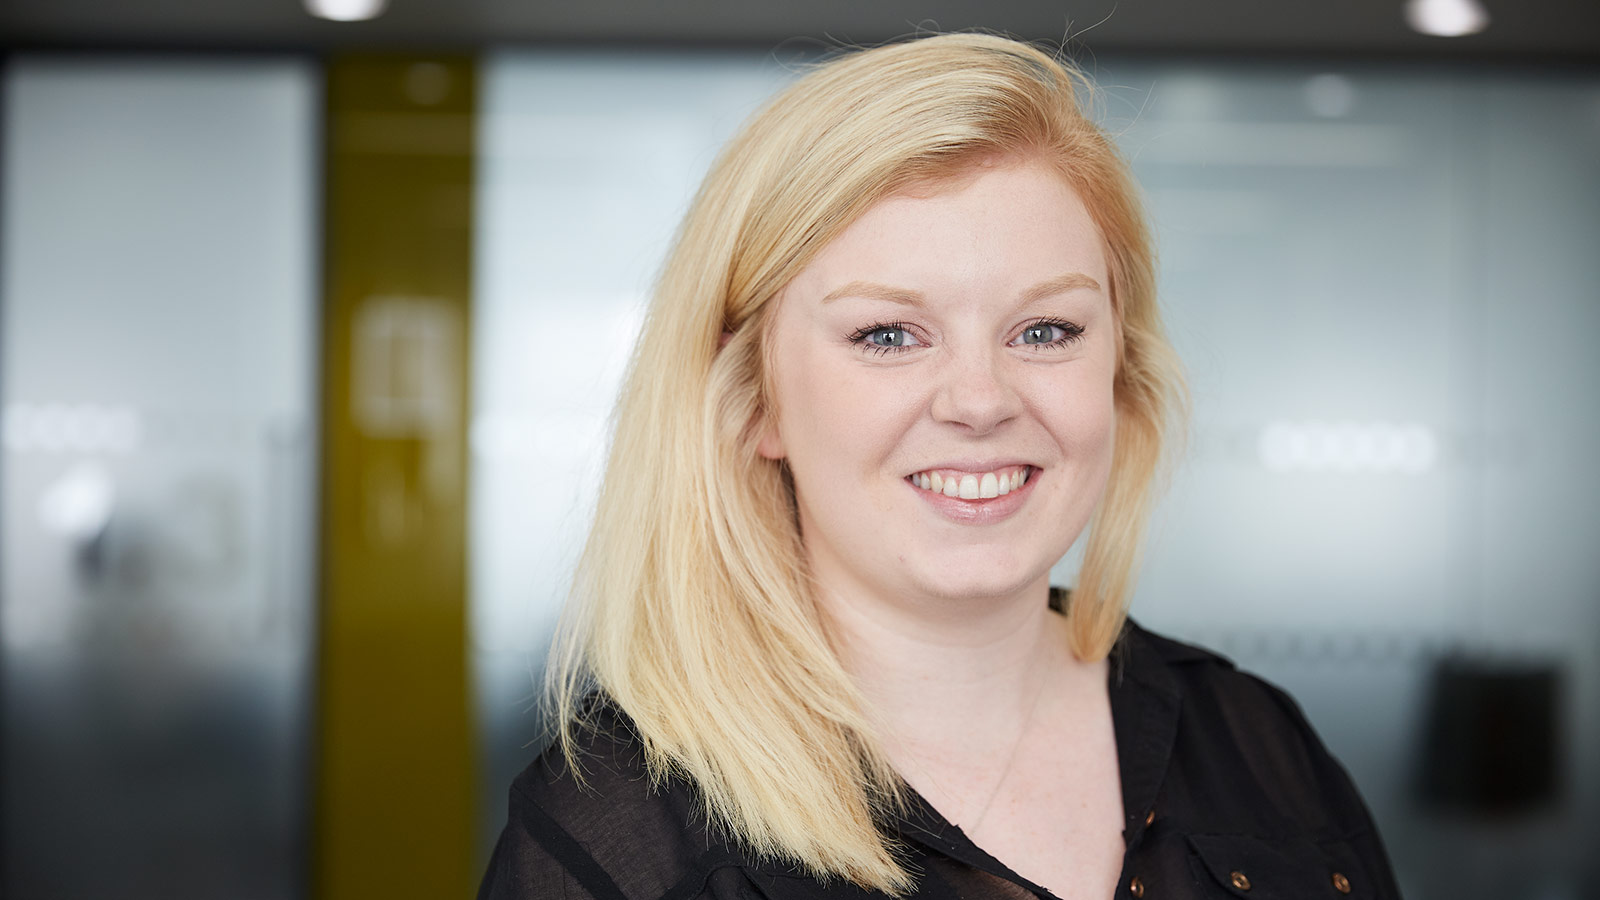 Nadia Houston, Assistant Project Manager, Summer placement